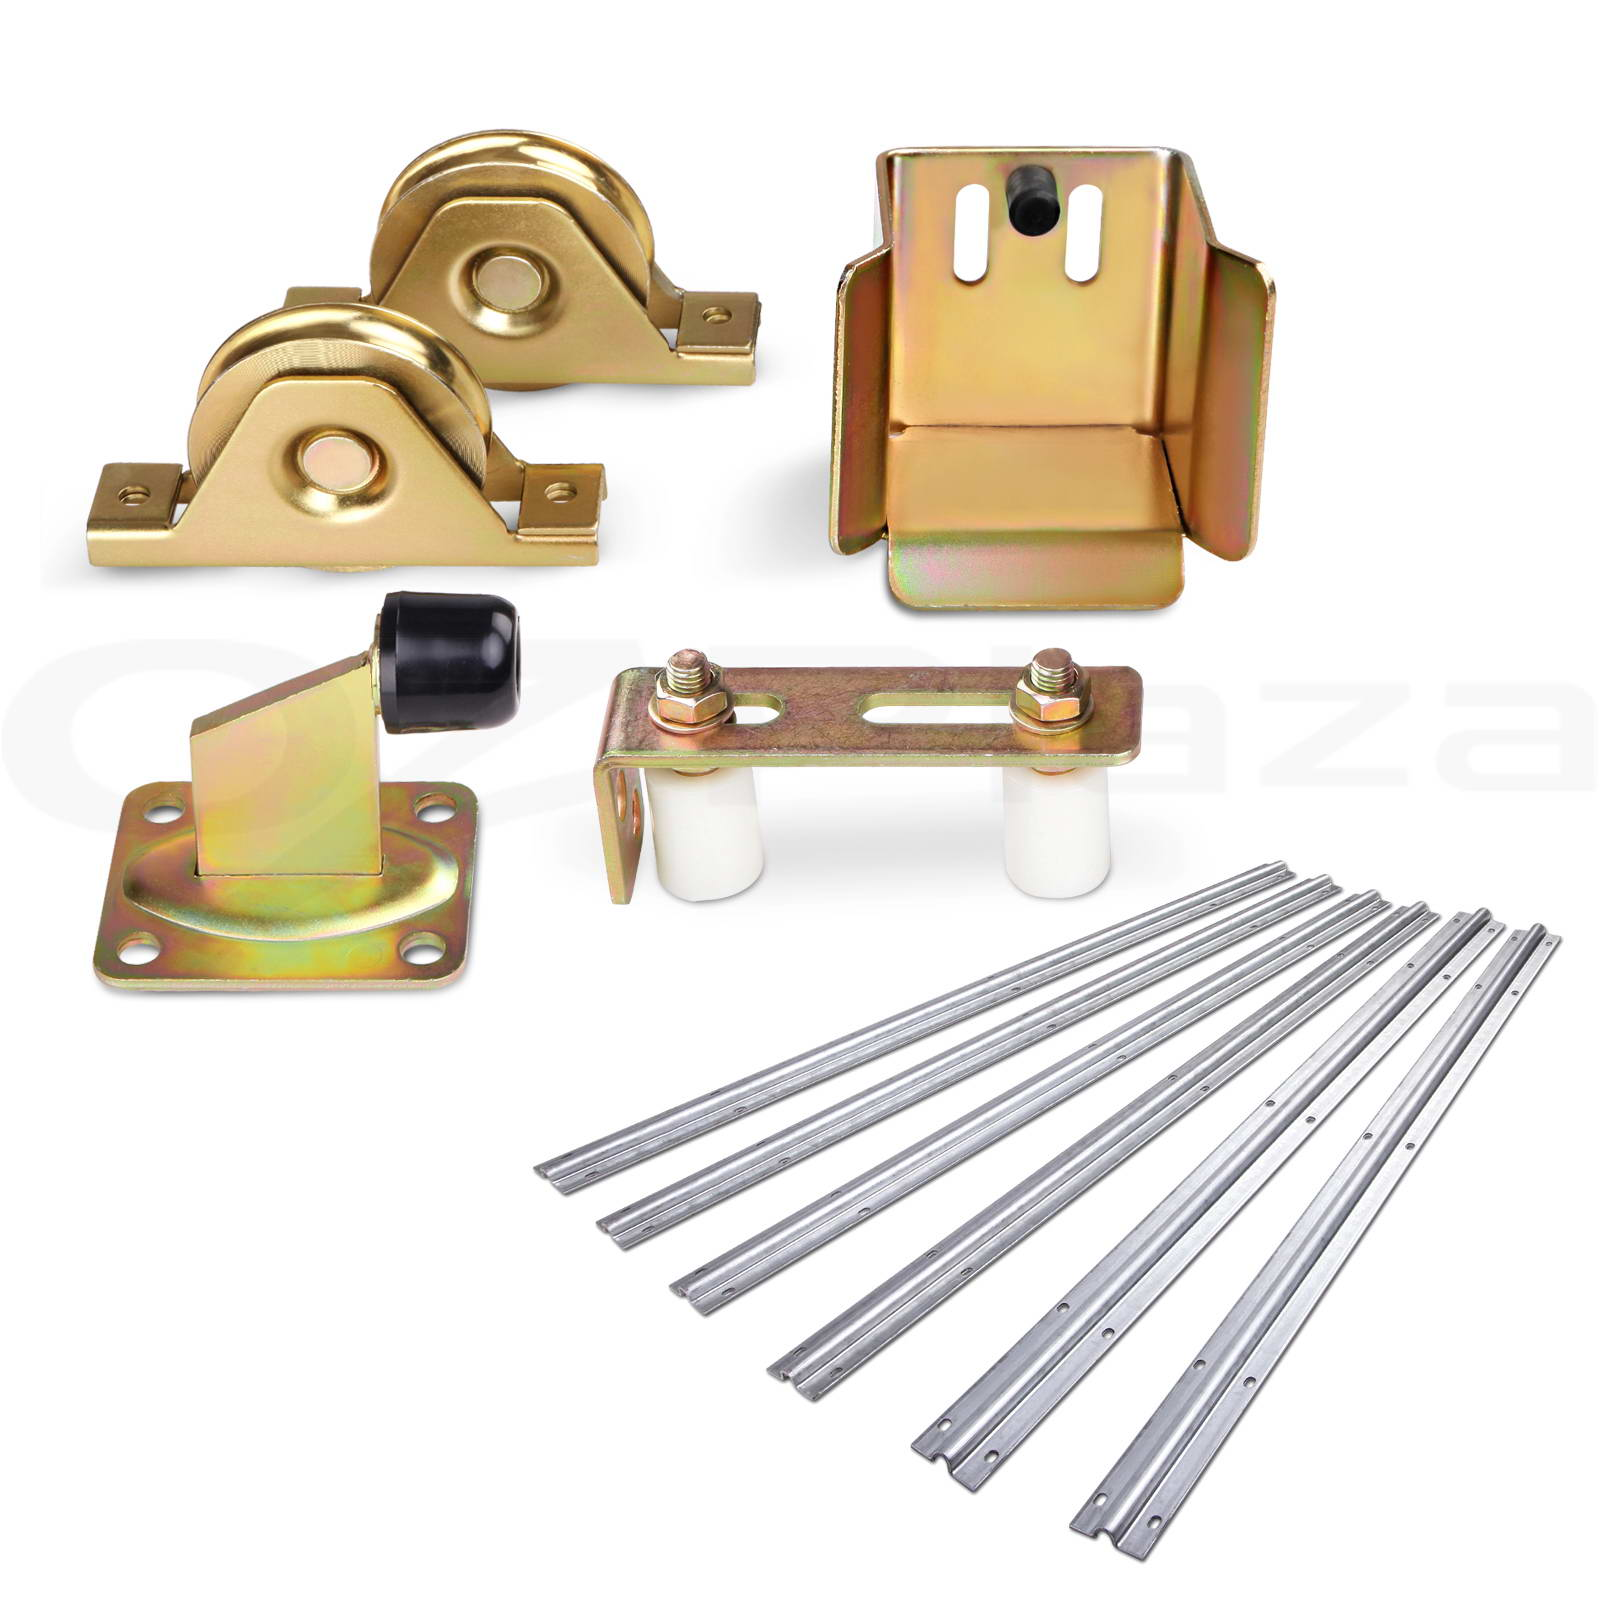 Sliding gate hardware accessories kit track wheels stopper